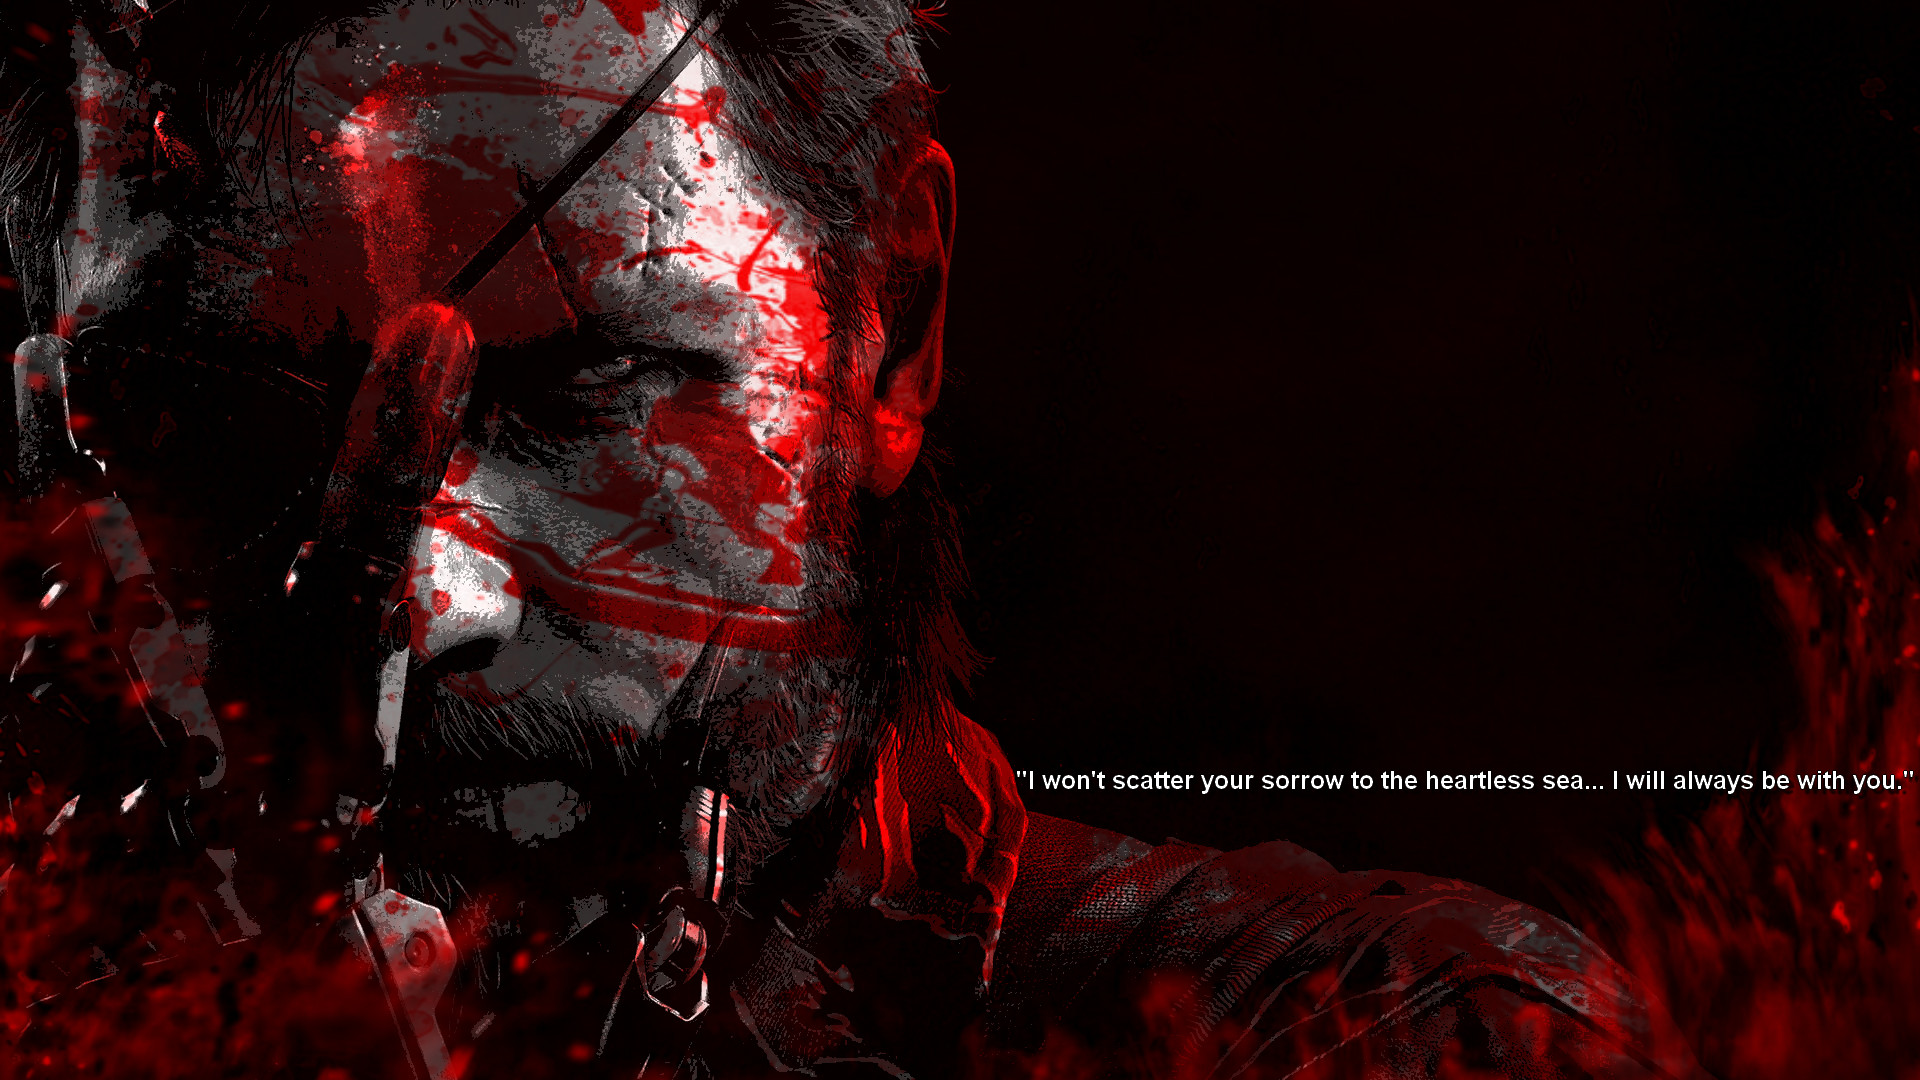 Metal Gear Solid 5: The Phantom Pain Wallpapers, Pictures, Images